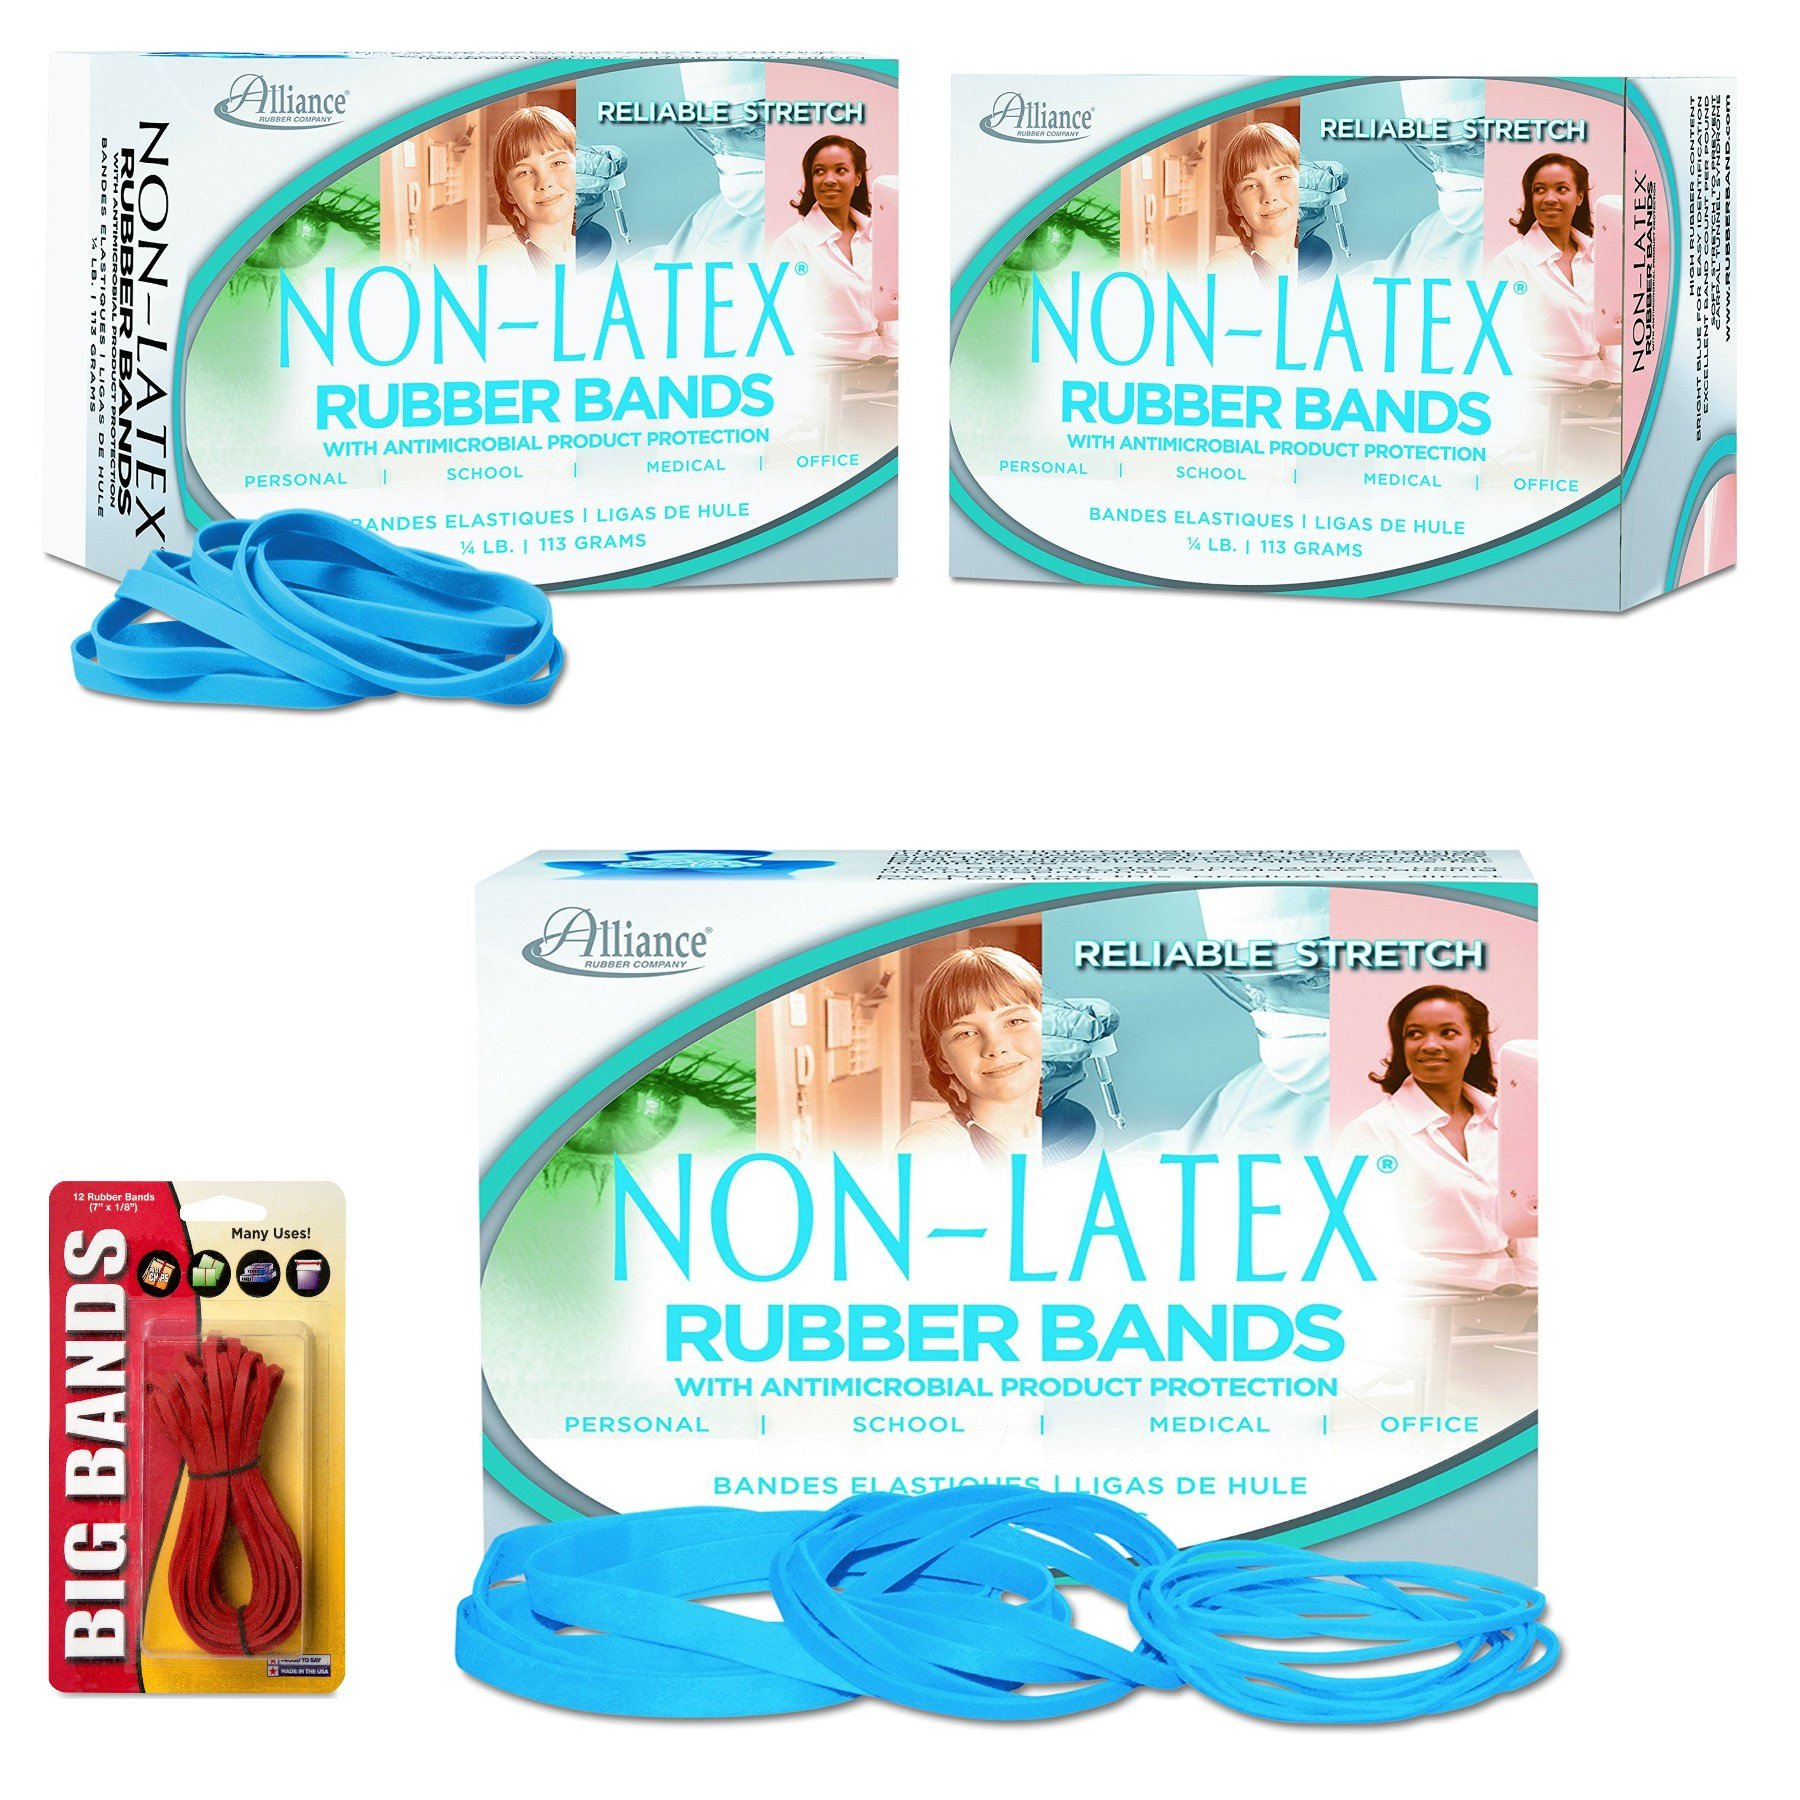 Alliance Rubber 42649#64 Non-Latex Antimicrobial Rubber Bands, 1/4 lb Box Contains Approx. 285 Bands (3 1/2'' x 1/4'', Cyan Blue) Bundle with 12 Big Rubber Bands